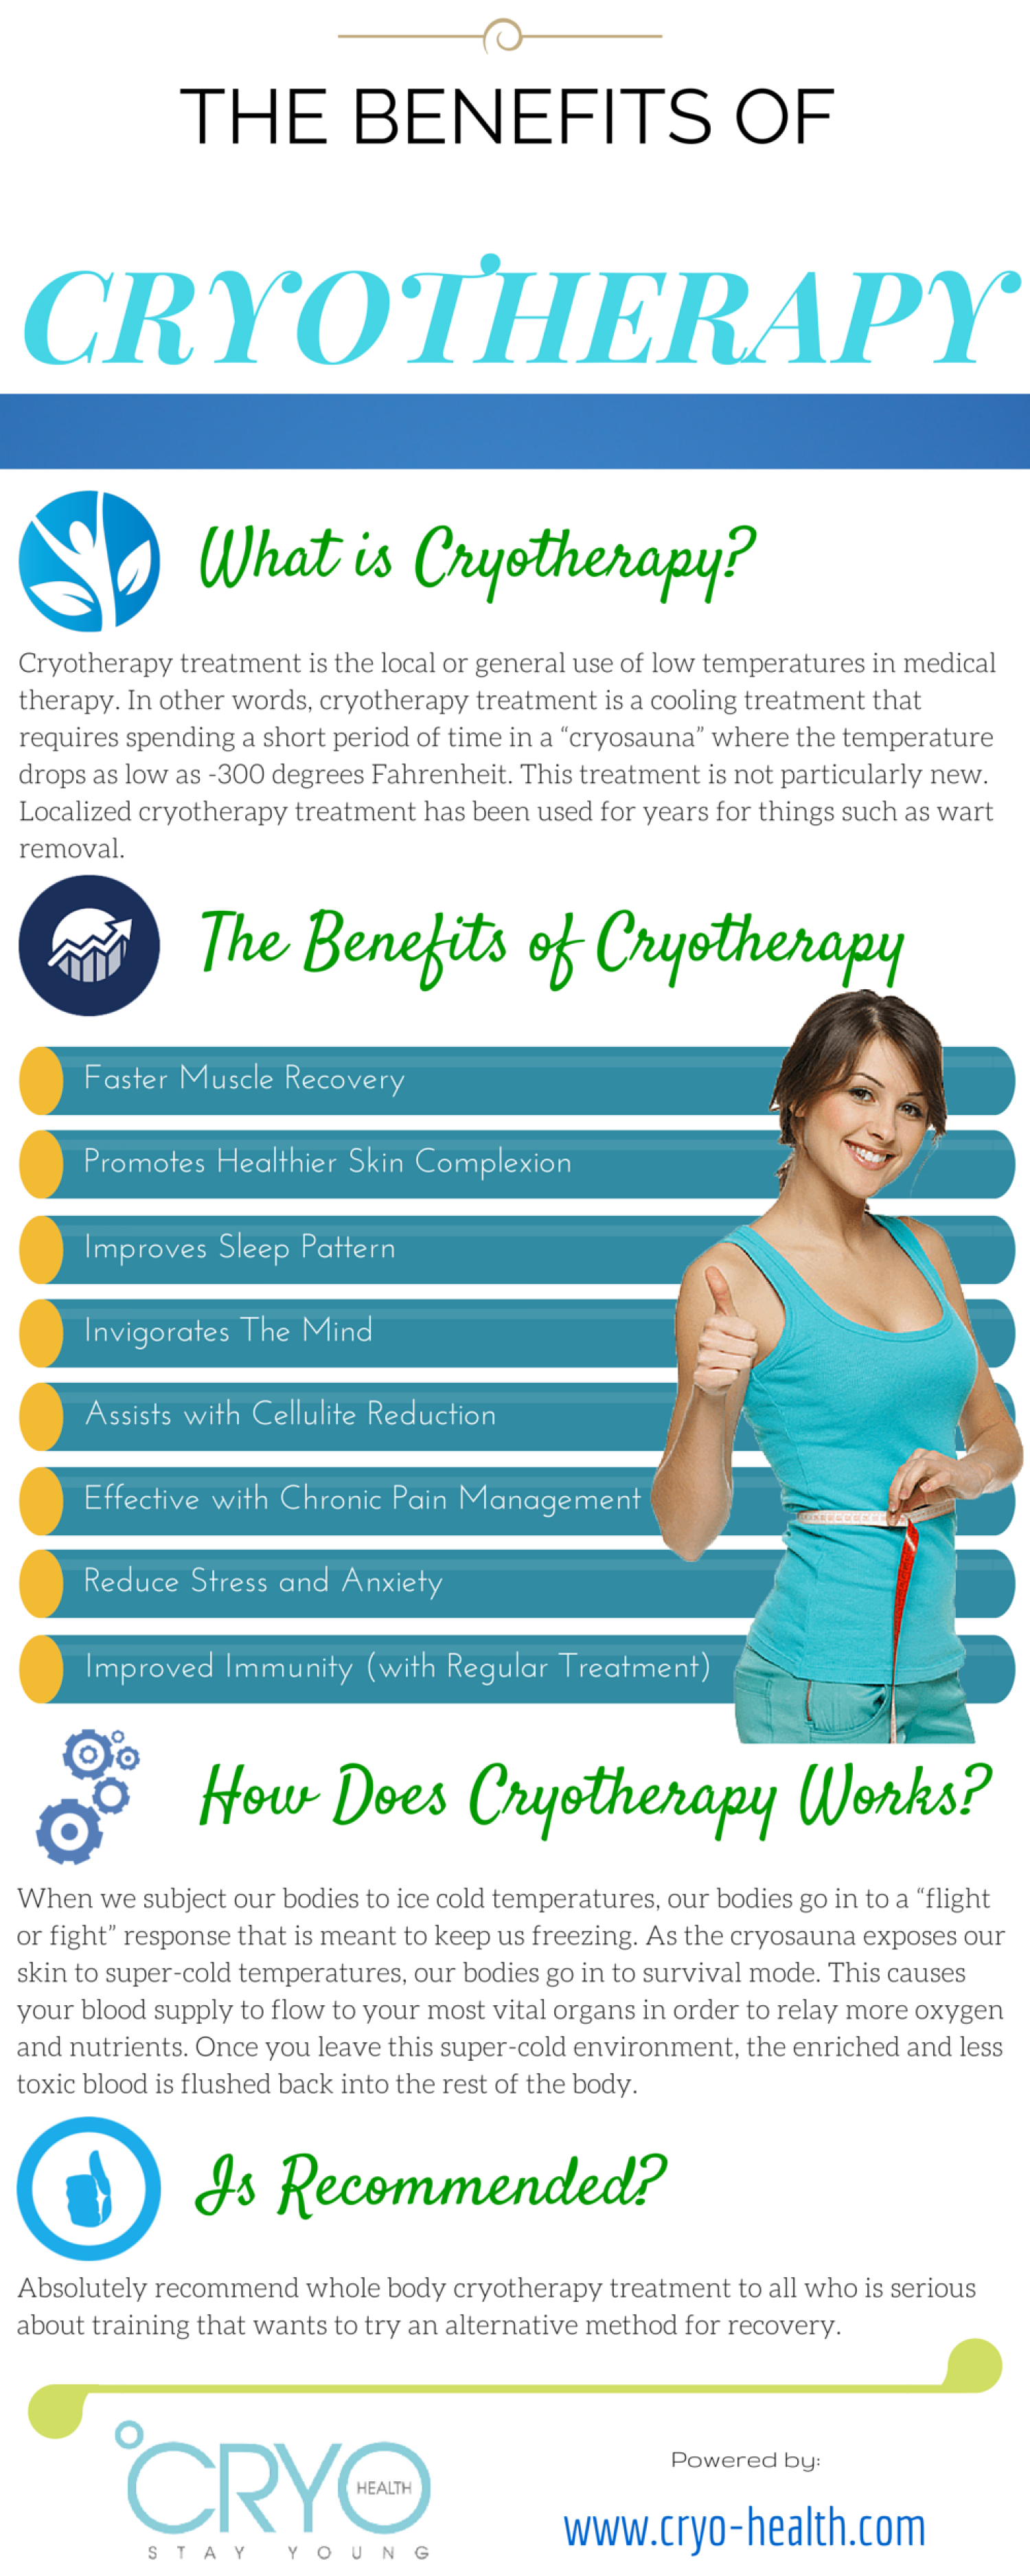 THE BENEFITS OF CRYOTHERAPY Infographic